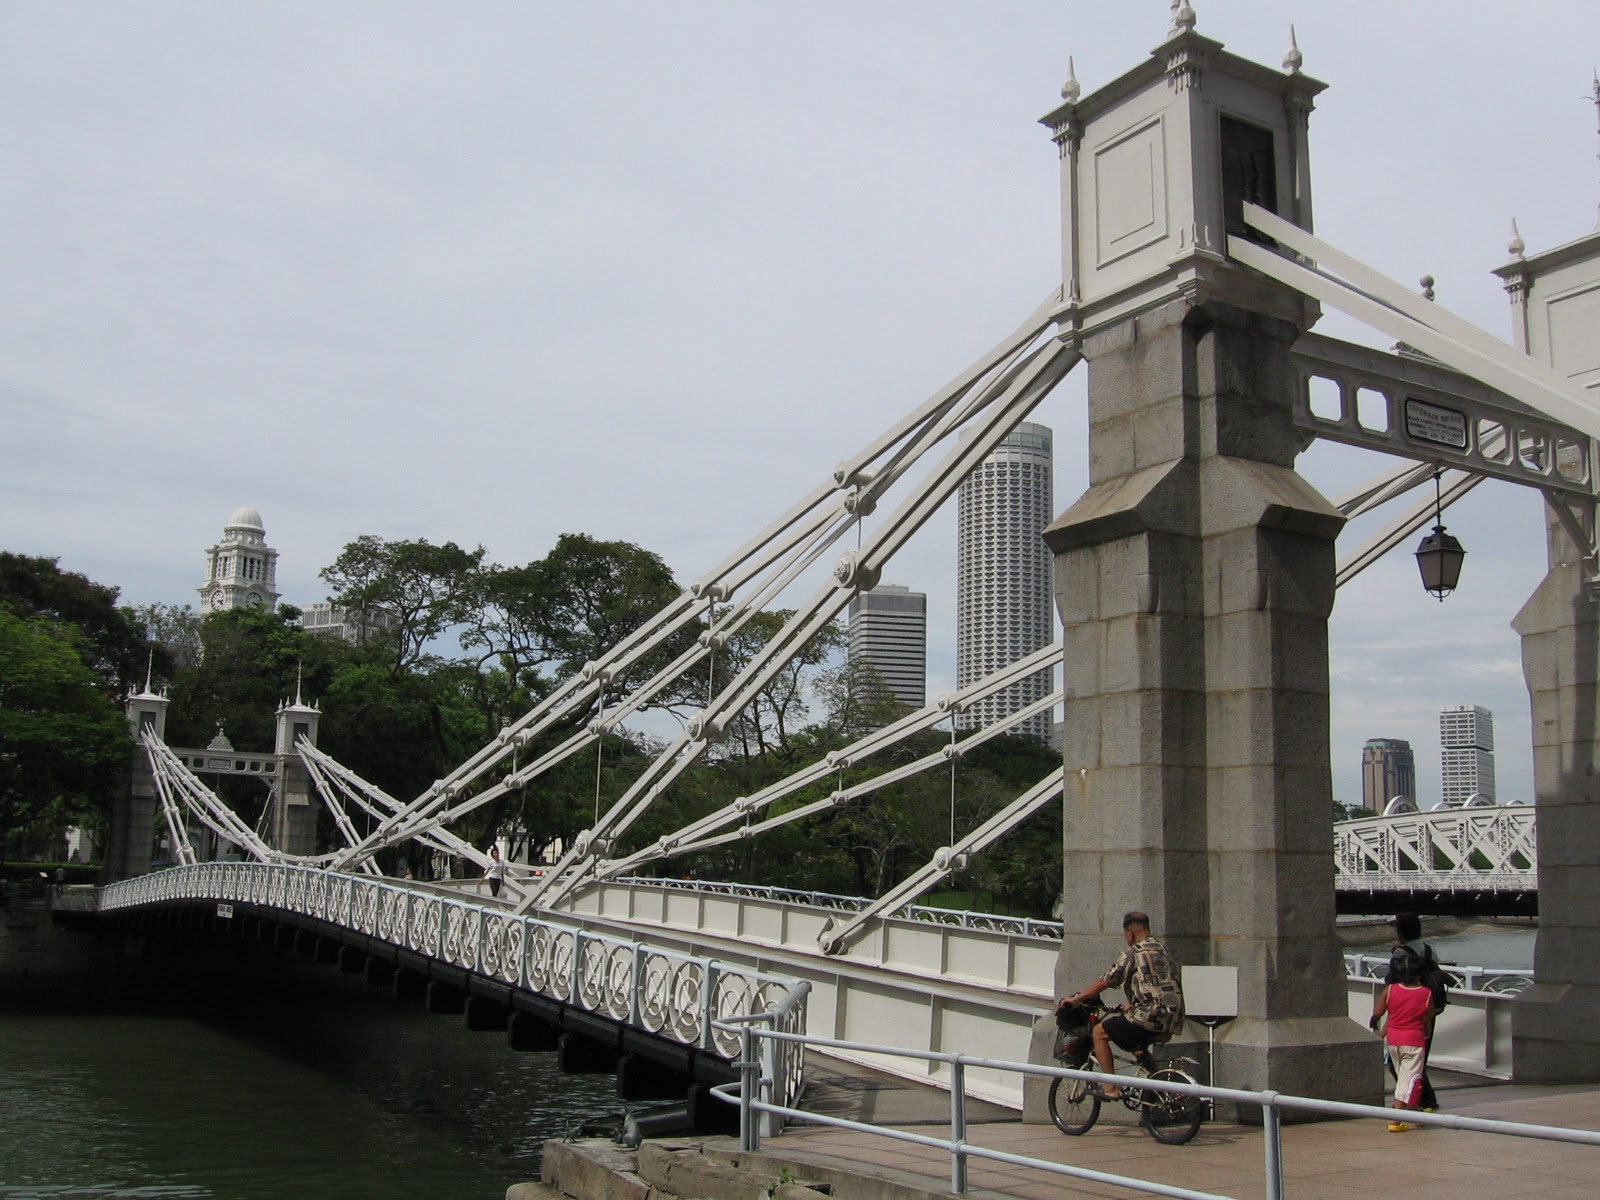 Cavenagh Bridge Singapore Location Map,Location Map of Cavenagh Bridge Singapore,Cavenagh Bridge Singapore Accommodation Destinations Attractions Hotels Map Photos Pictures